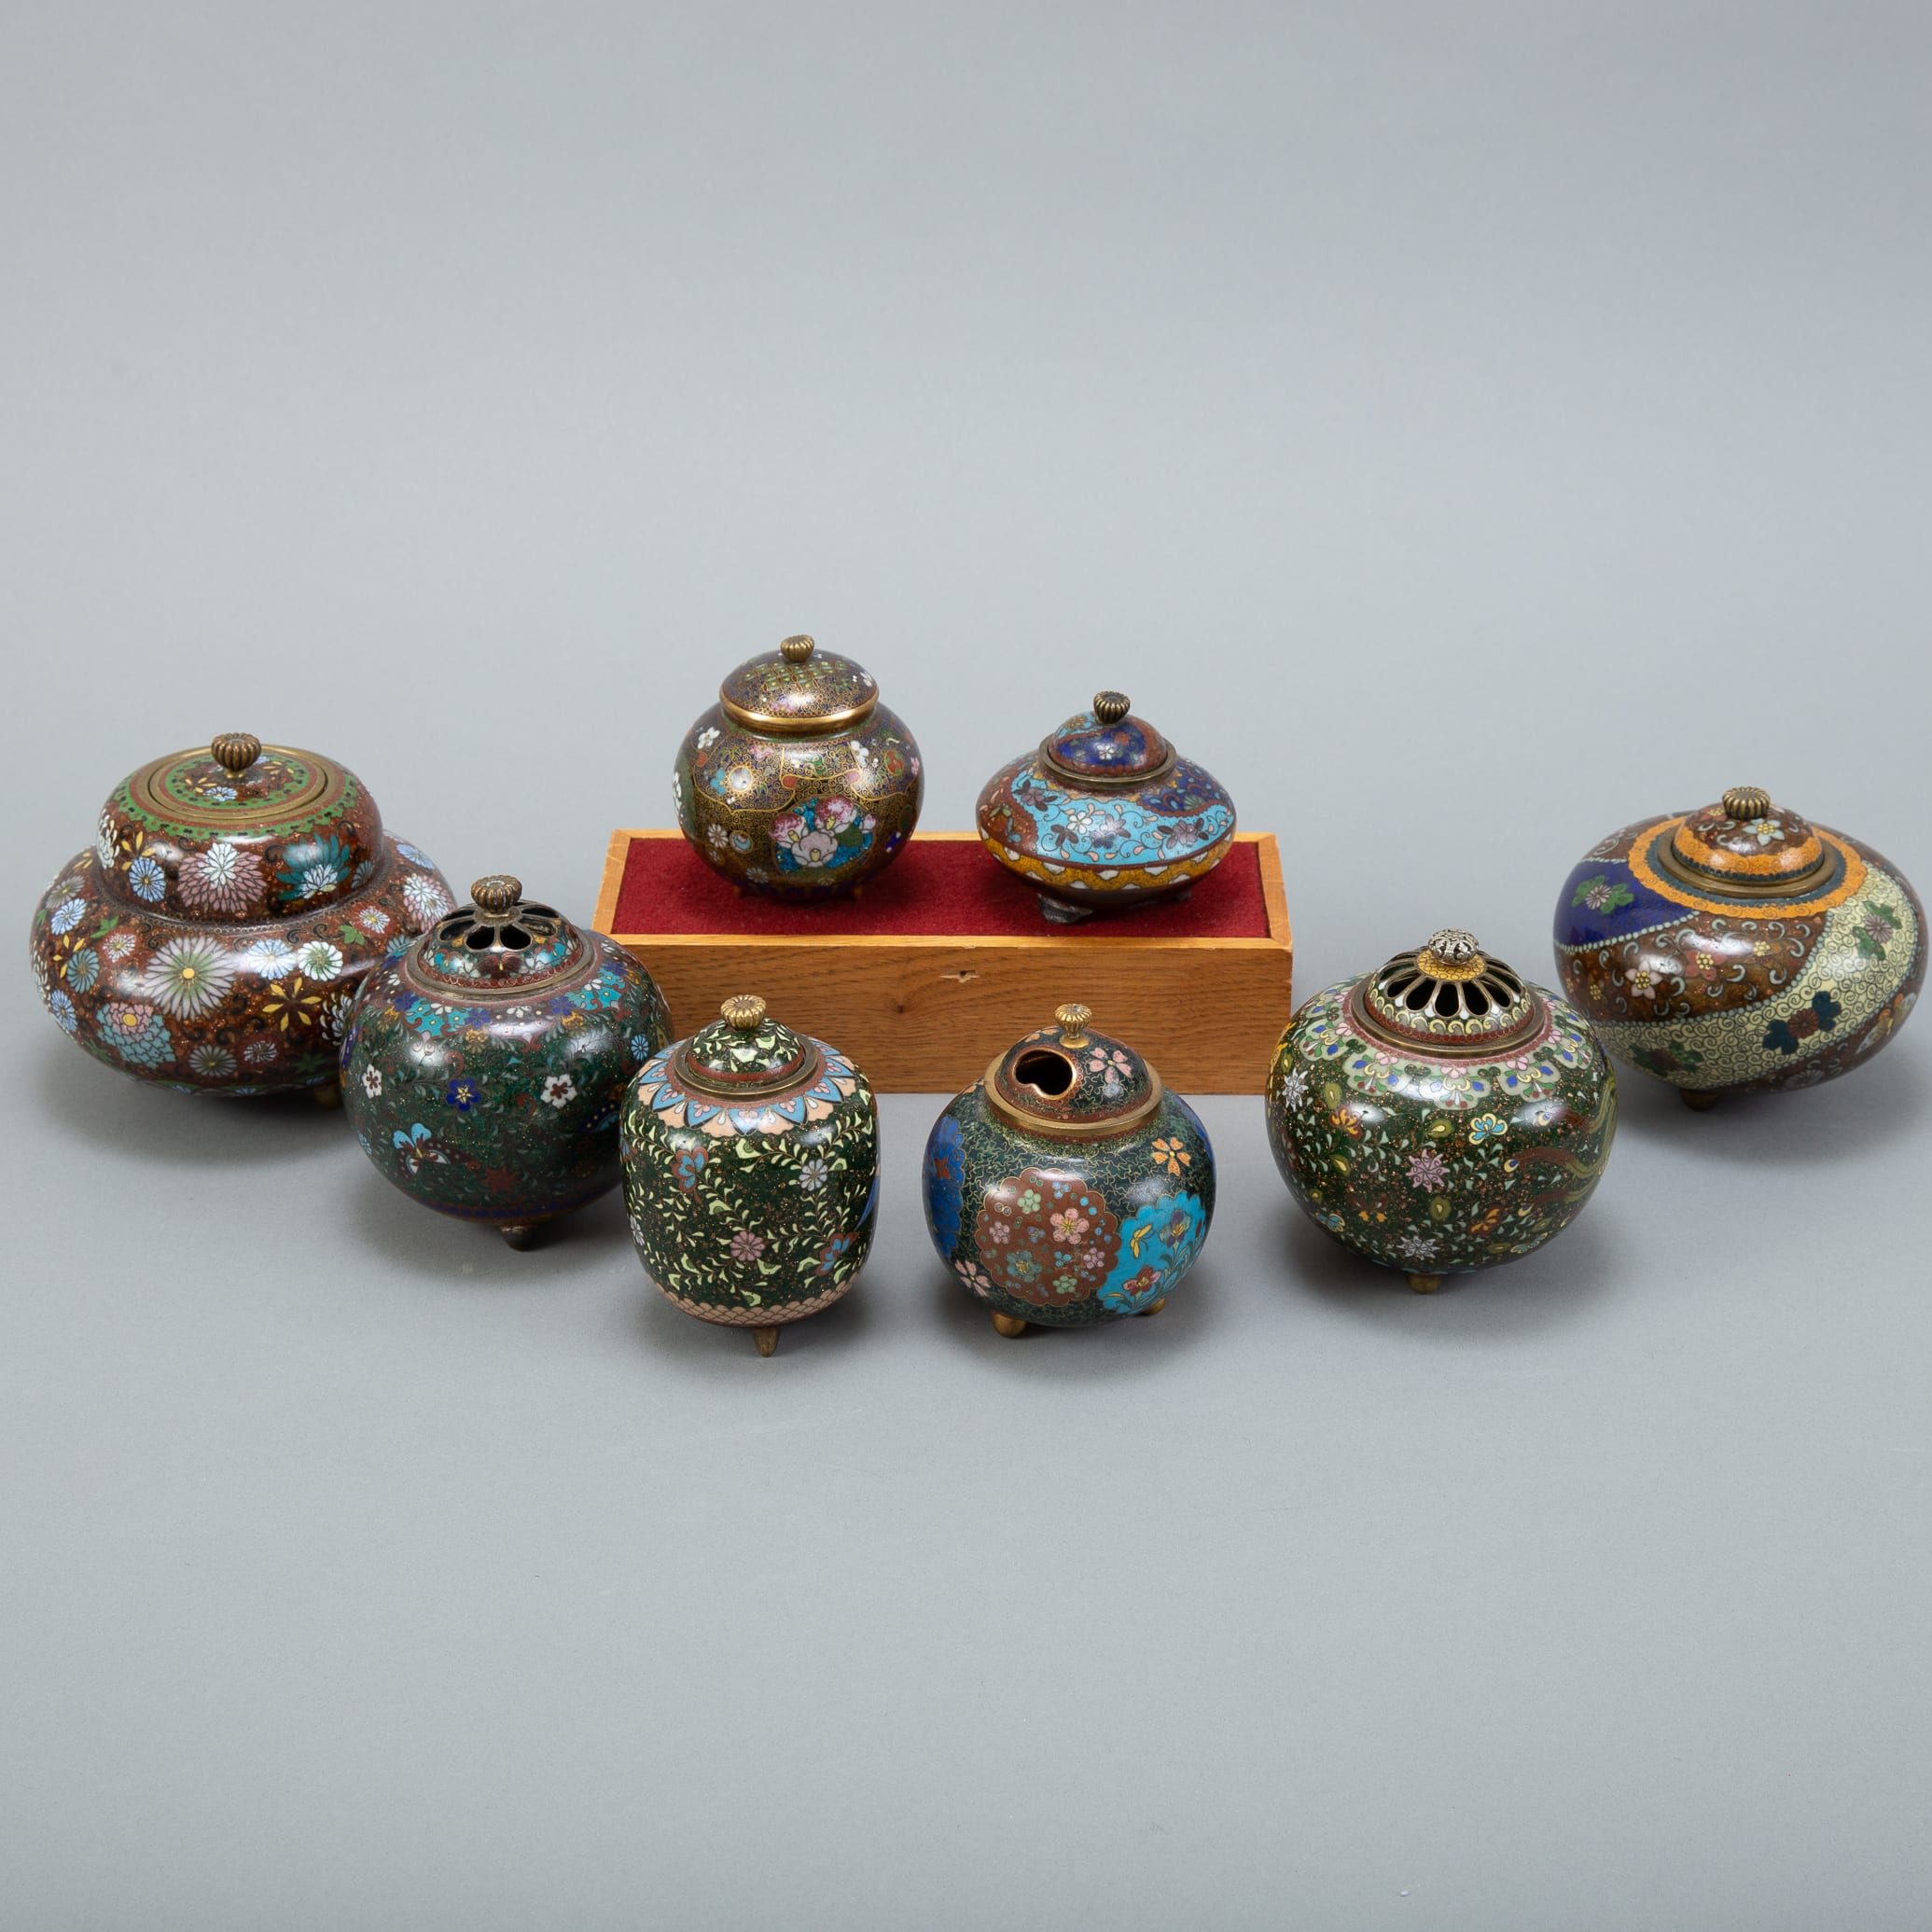 Lot 023: Grp: 8 Japanese Meiji Cloisonne Censers